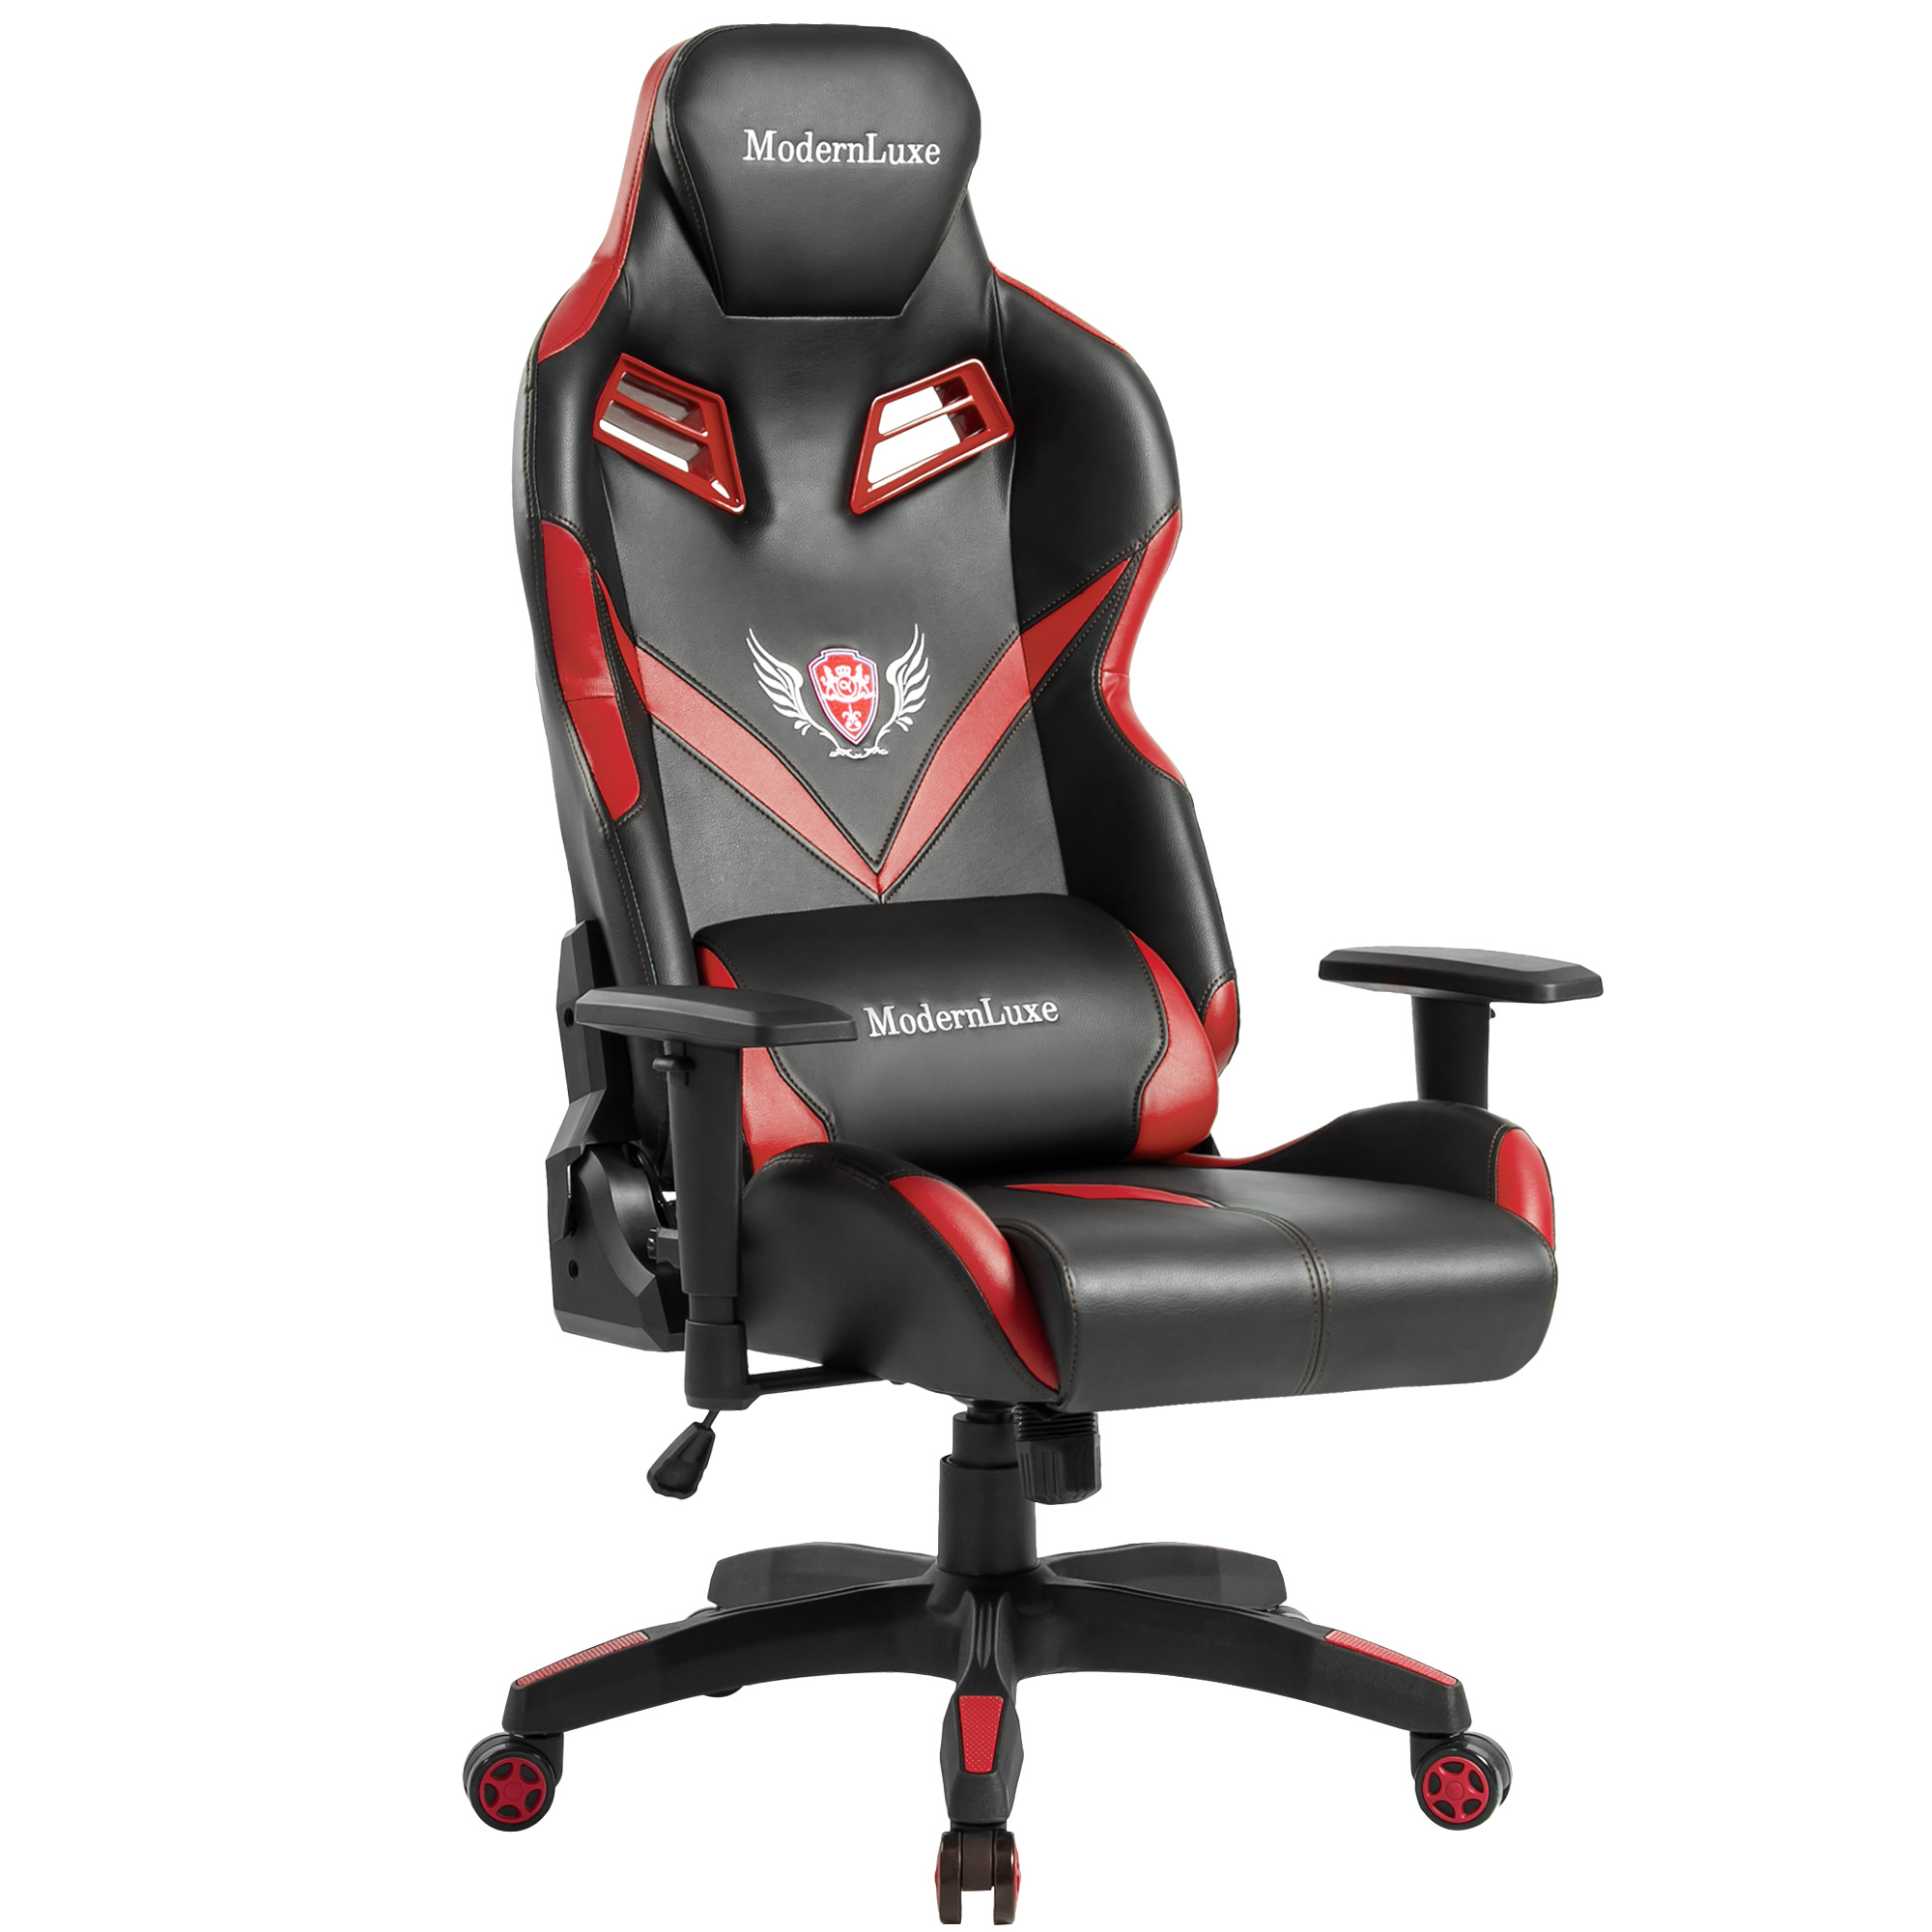 ModernLuxe High-back Gaming Chair, Leather with Lumbar Support